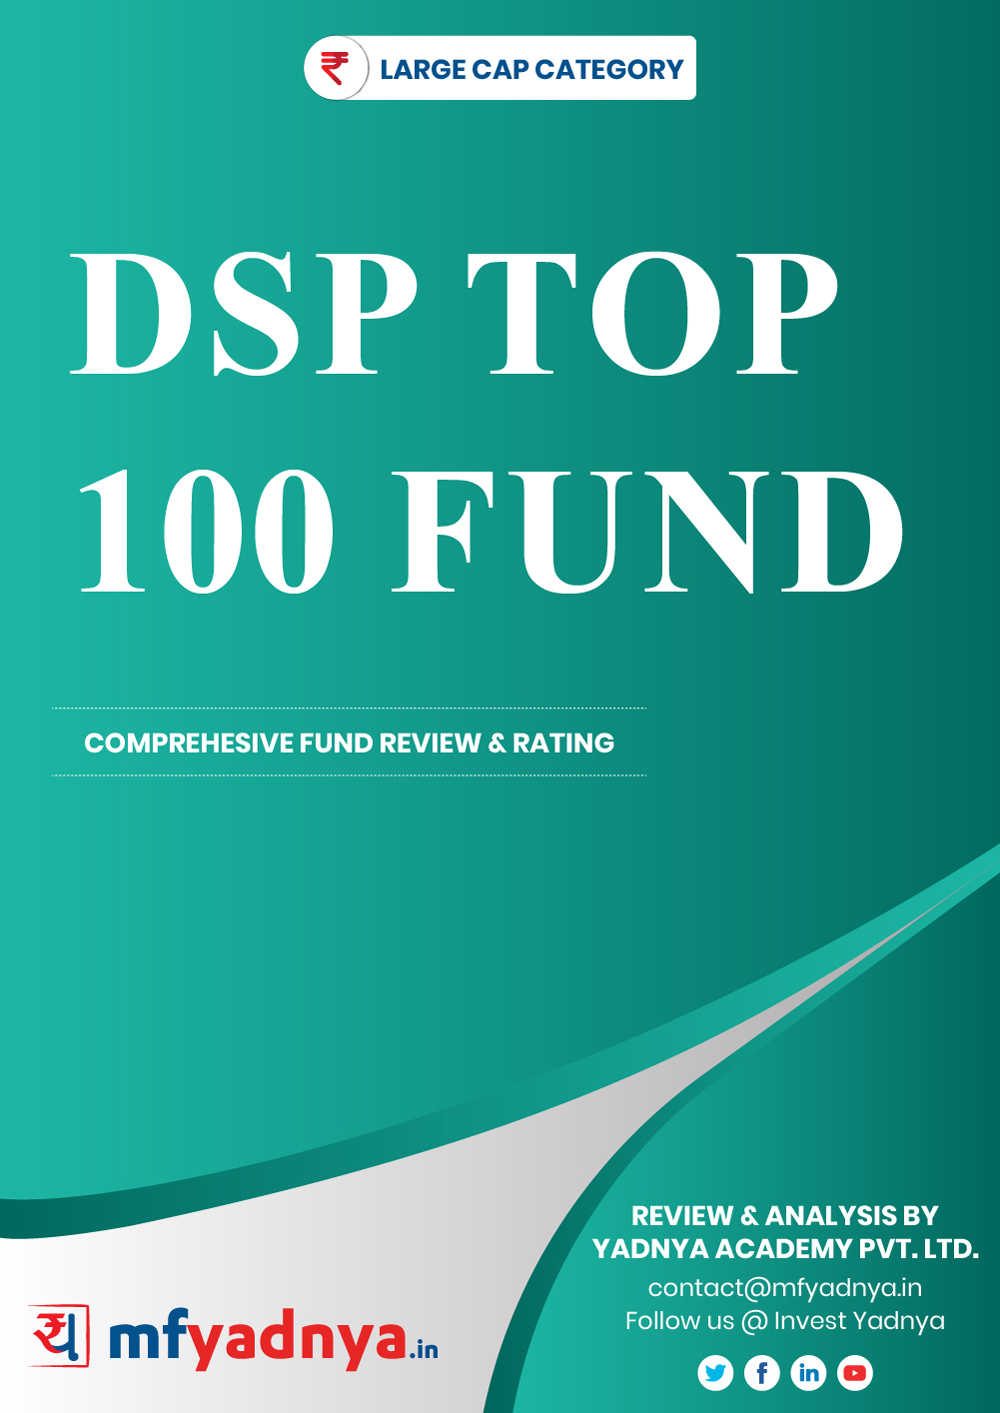 Large Cap Category Review - DSP Top 100  Fund. Most Comprehensive and detailed MF review based on Yadnya's proprietary methodology of Green, Yellow & Red Star. Detailed Analysis & Review based on May 31st, 2020 data.